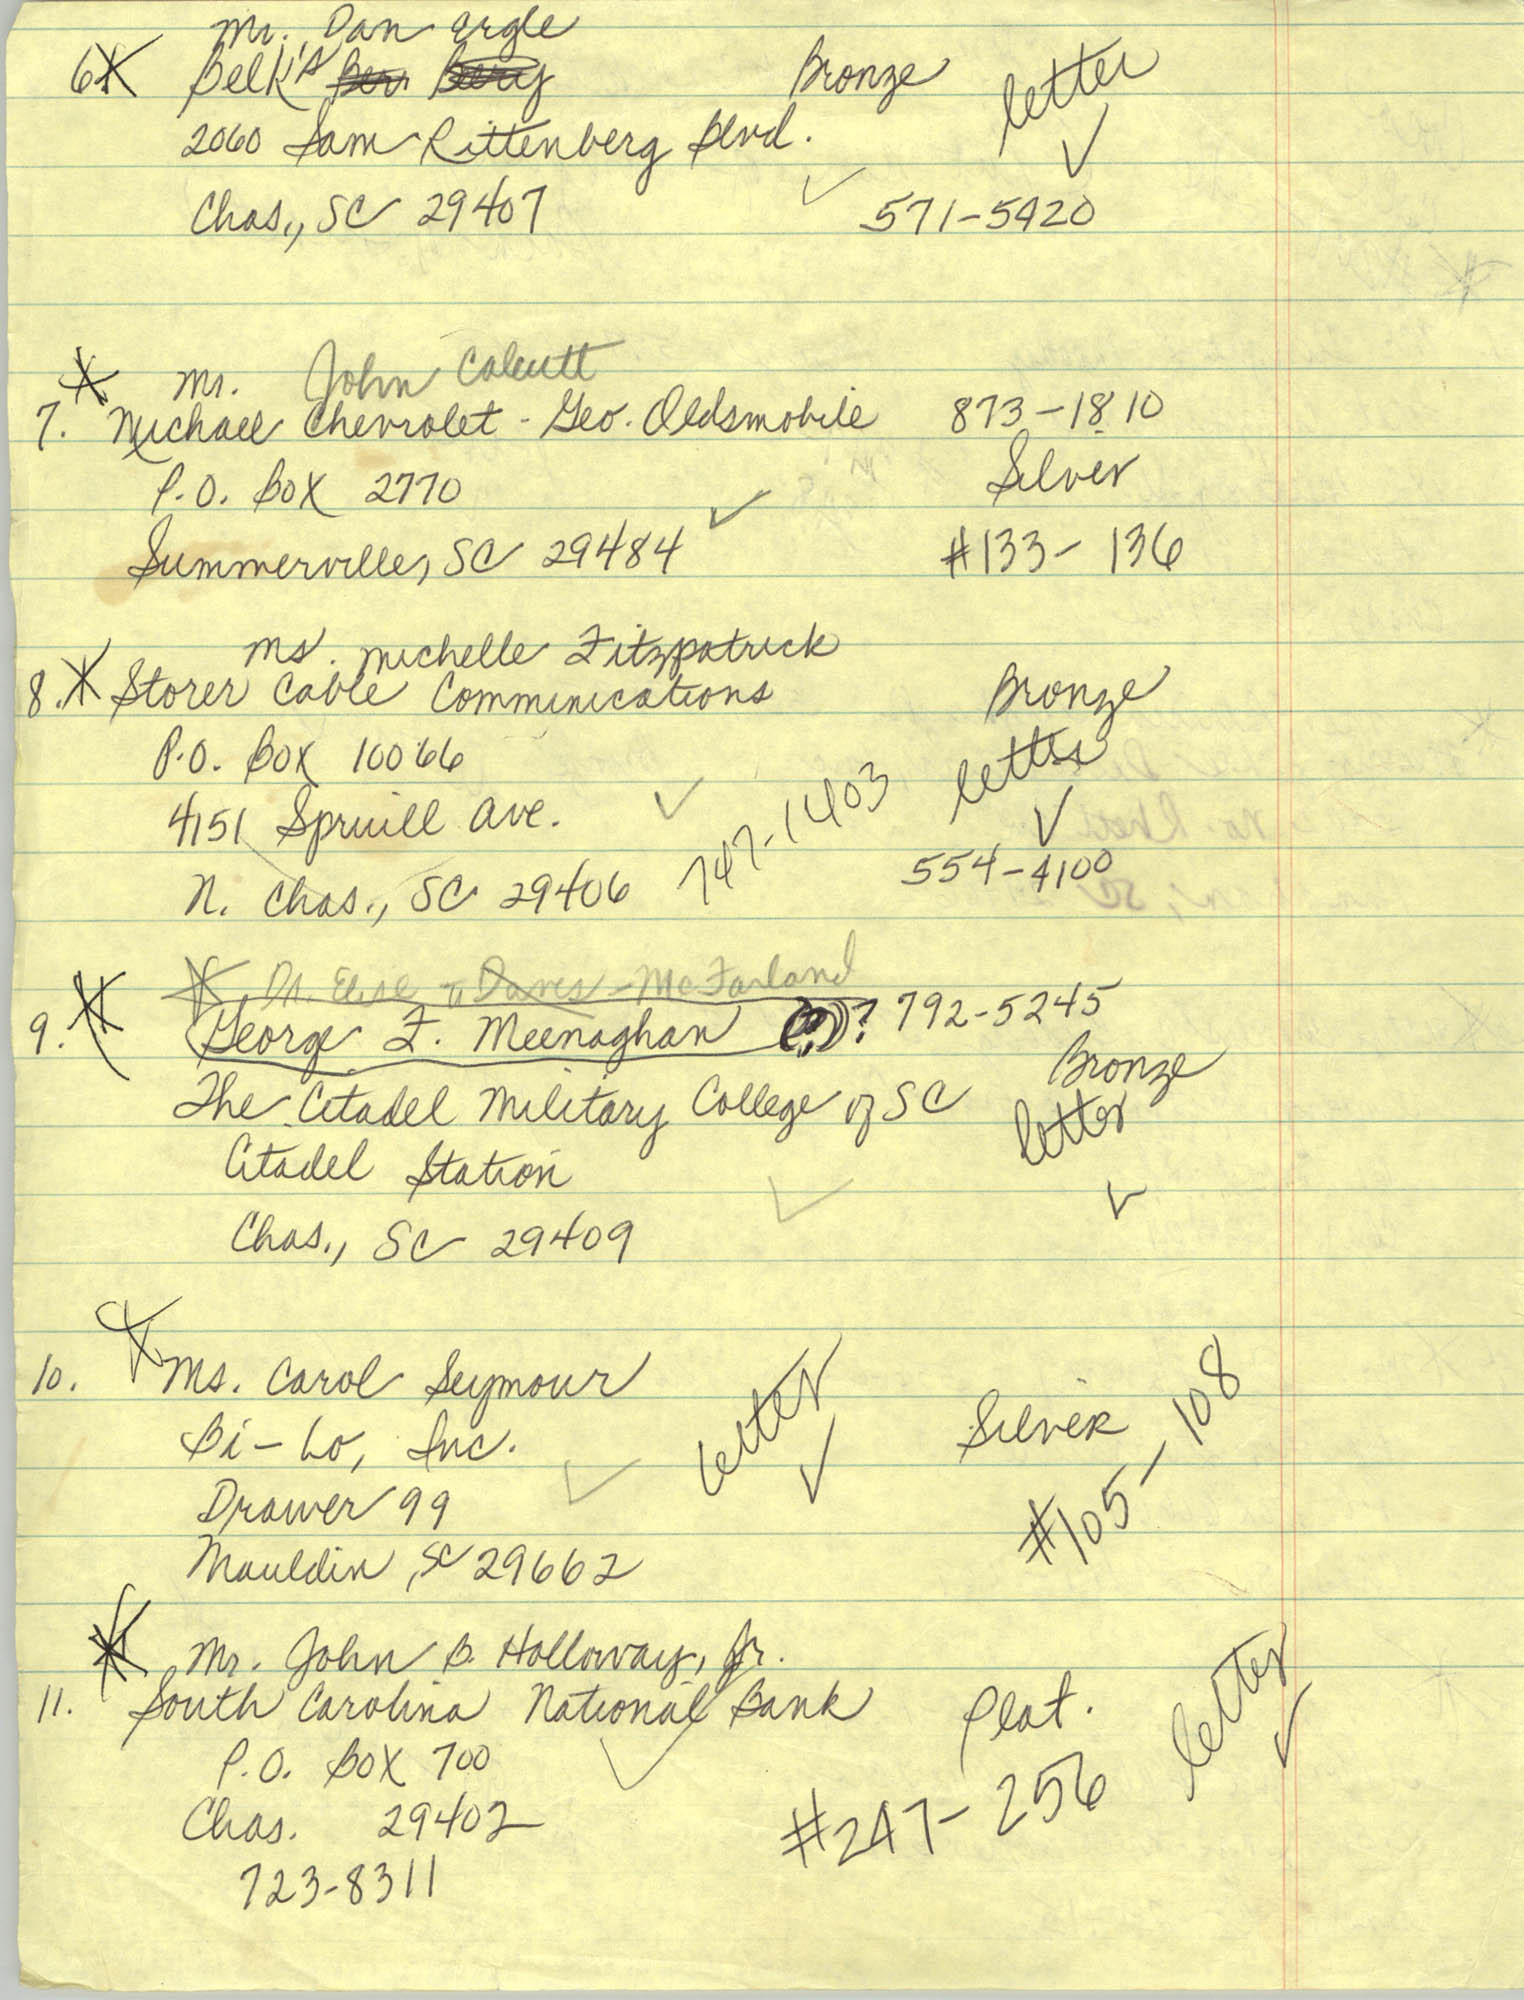 Handwritten Addresses for Tickets, Page 2